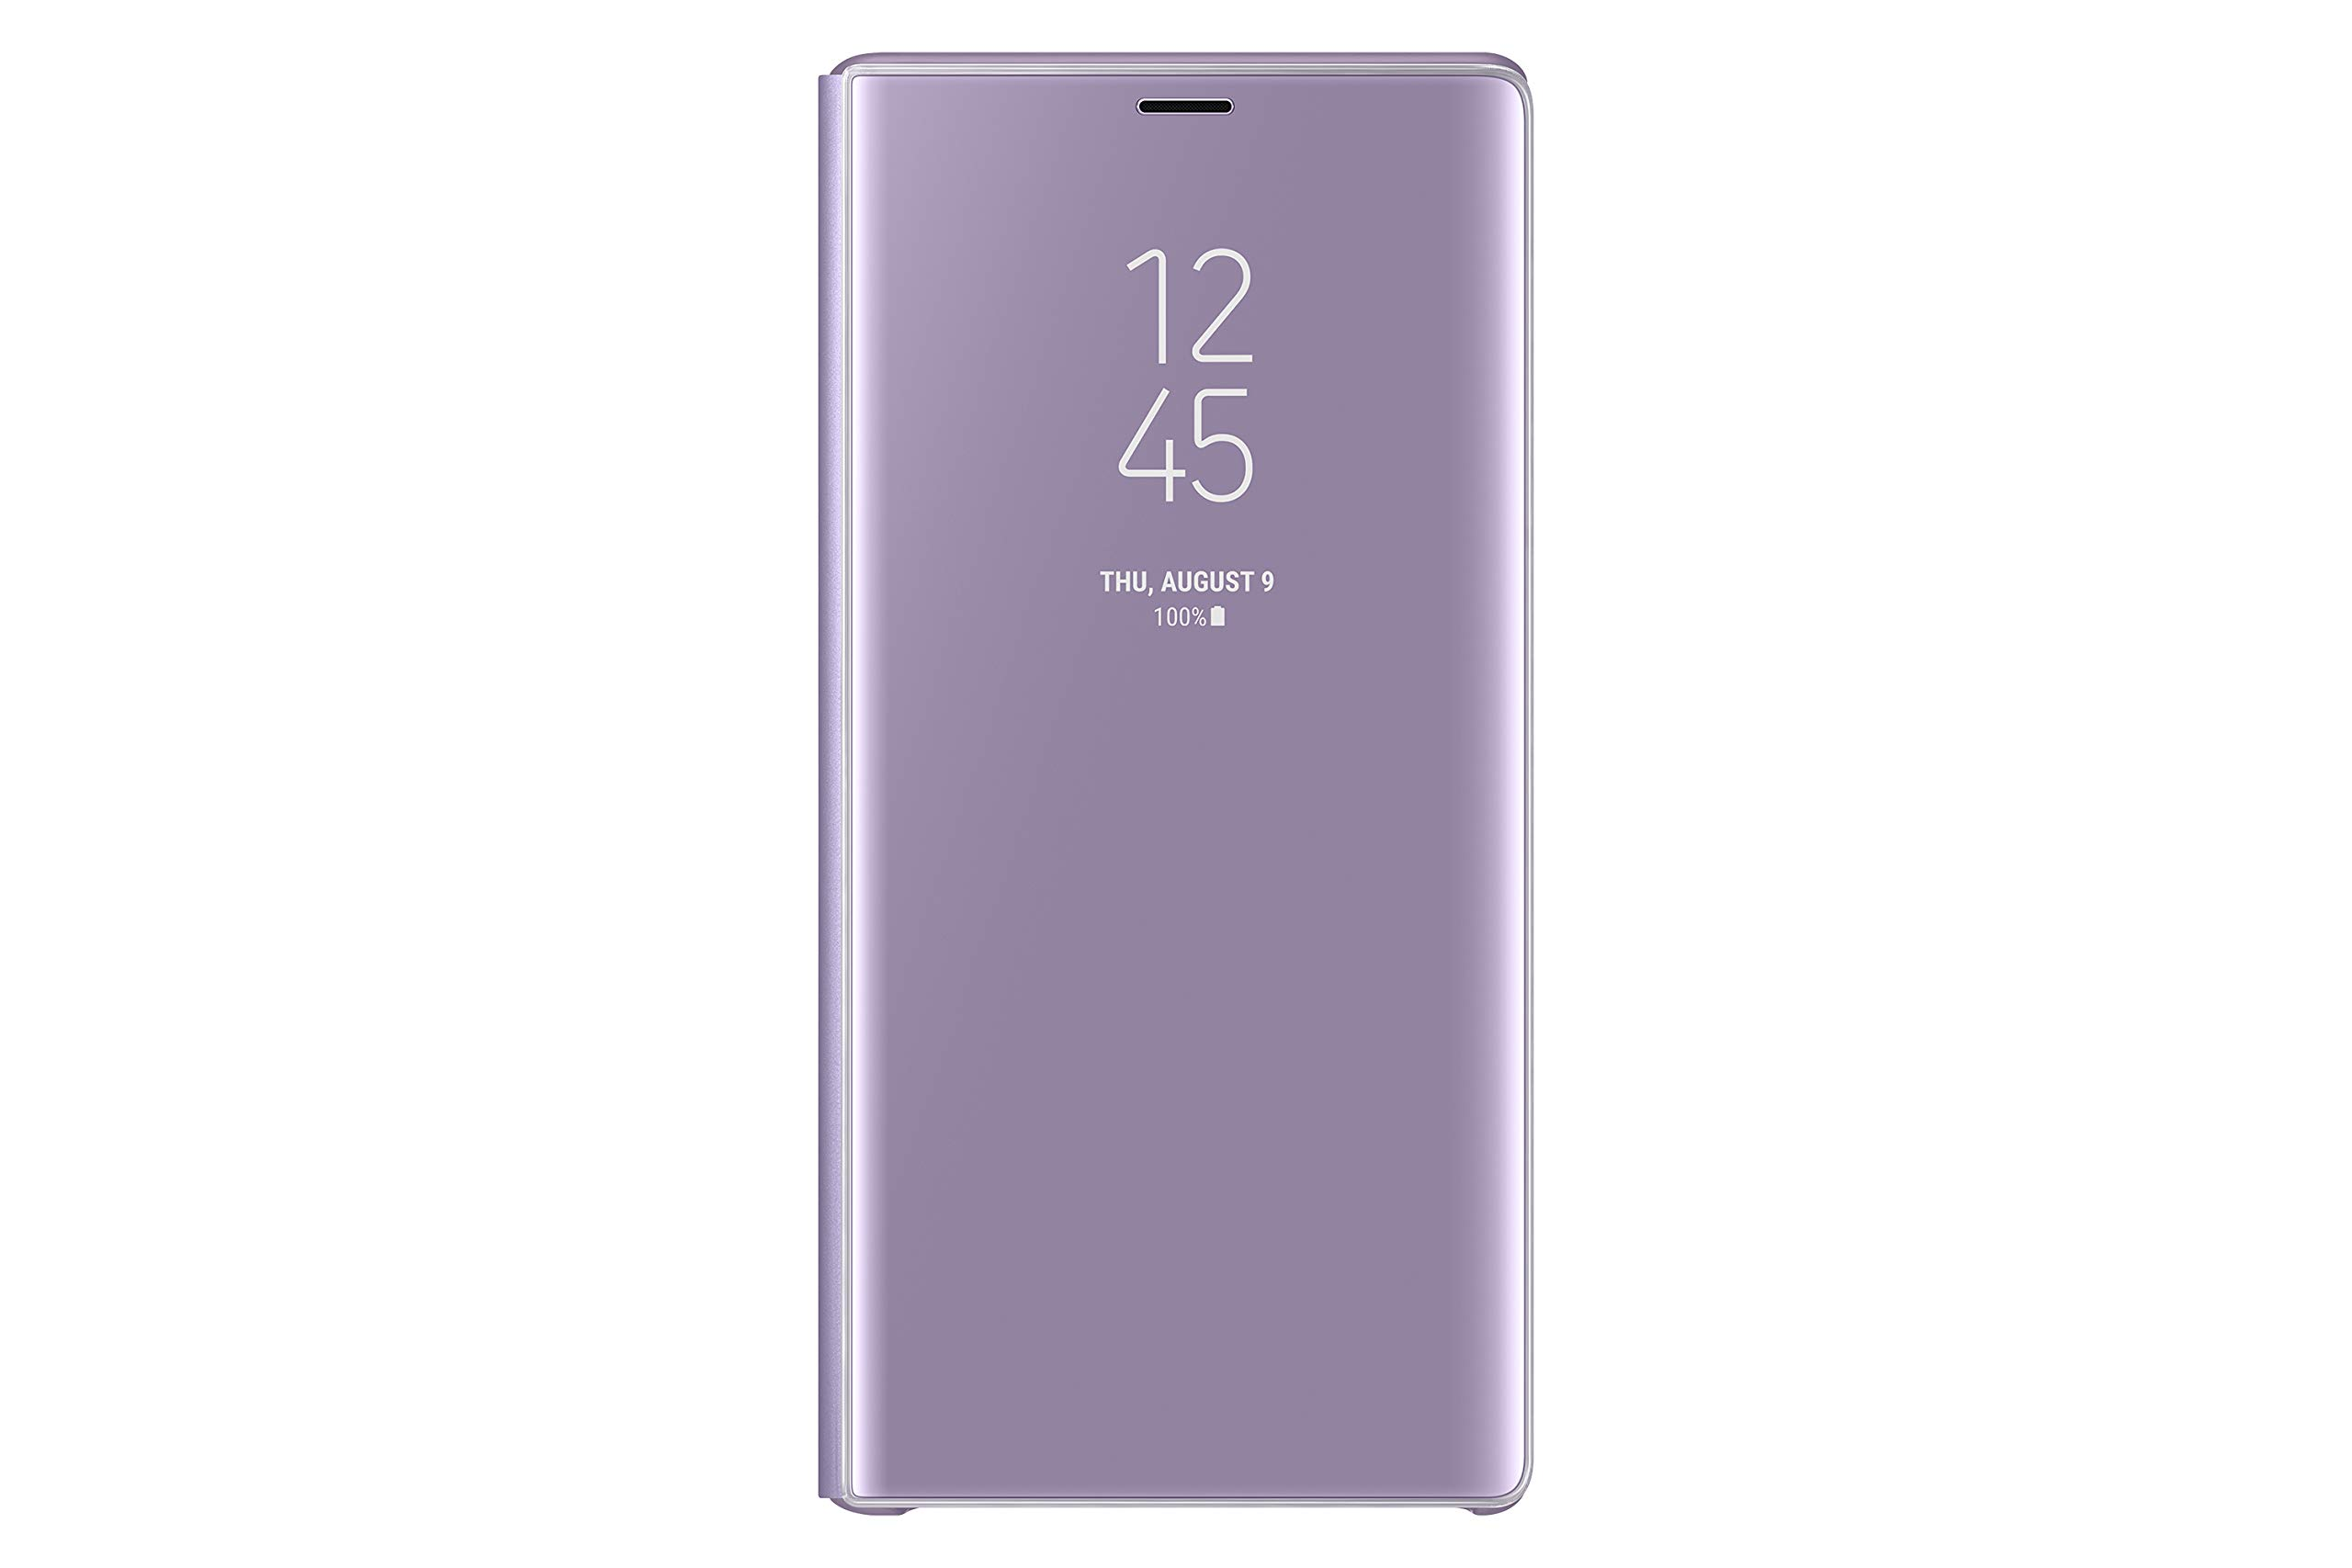 Samsung Galaxy Note9 Case EF-ZN960CVEGUS S-View Flip Cover with Kickstand, Lavender Purple by Samsung